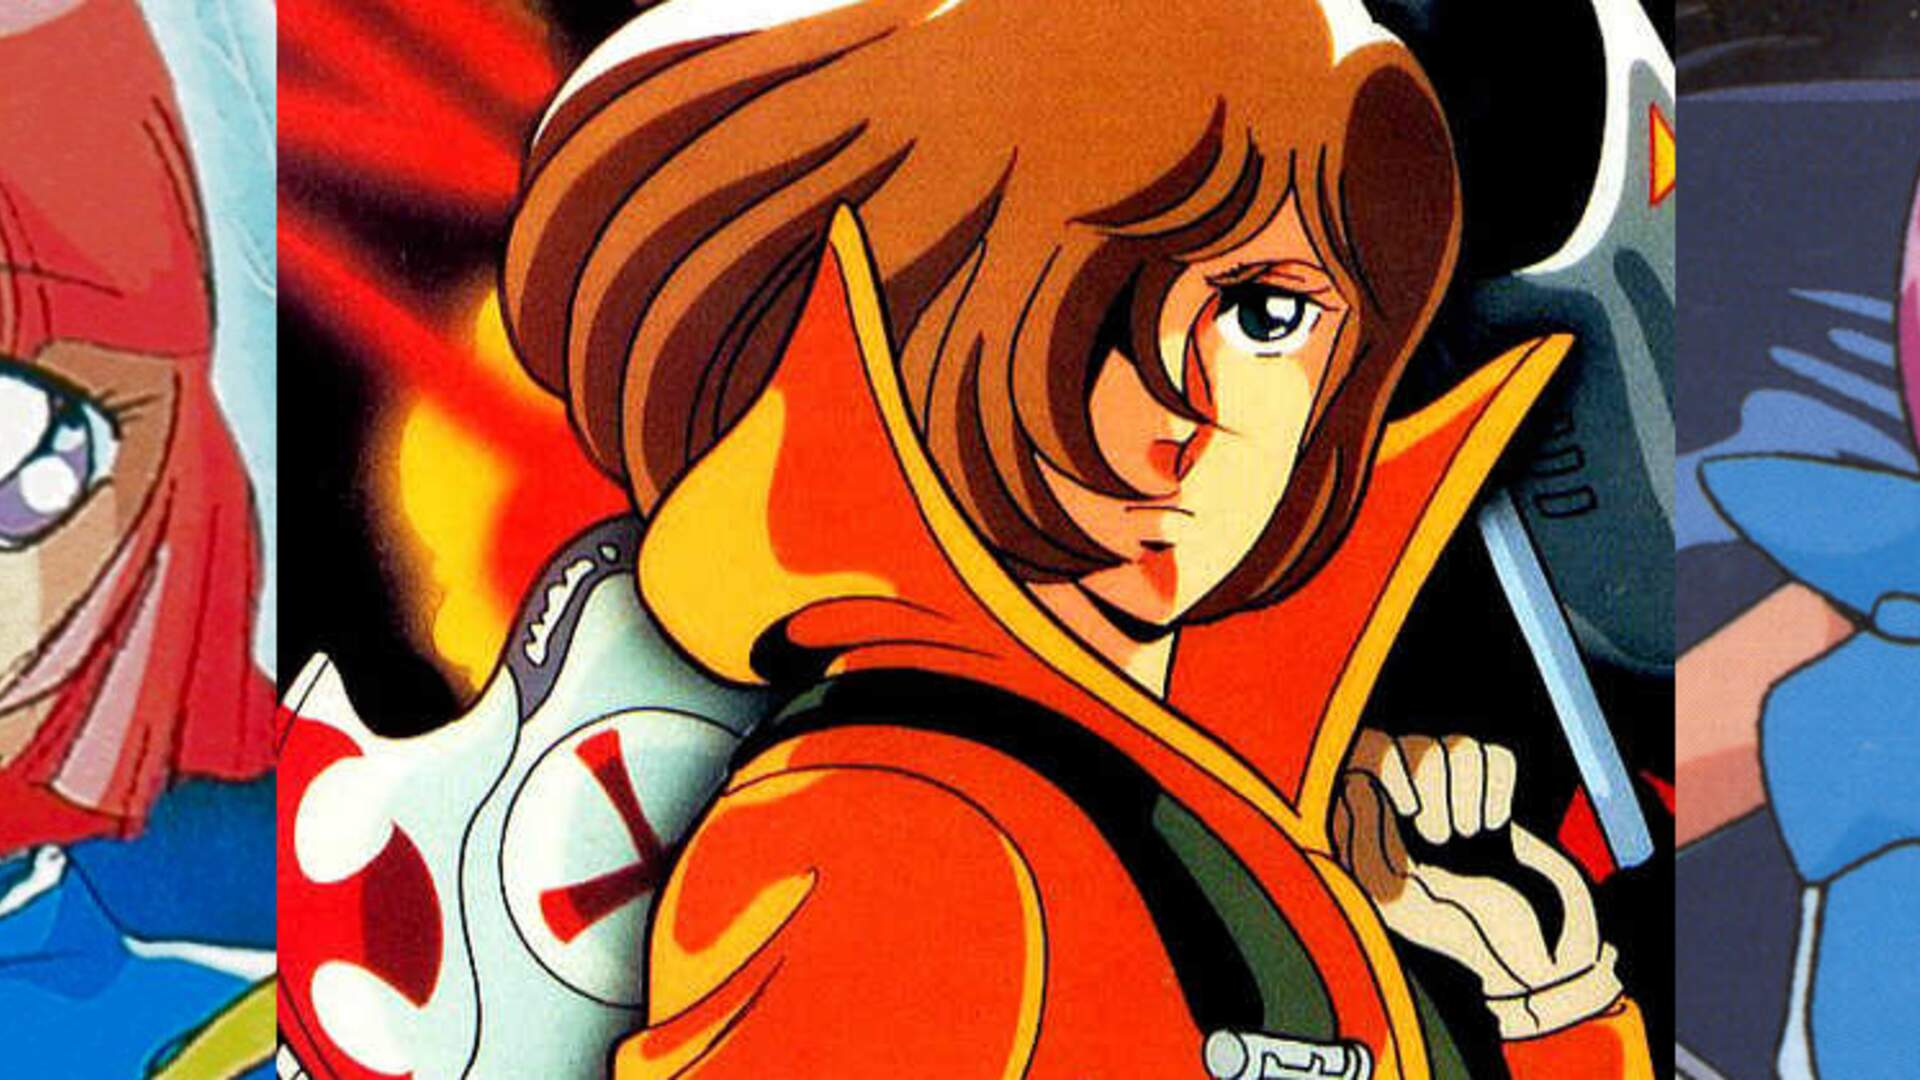 1989: The Year Anime Invaded the US Games Business